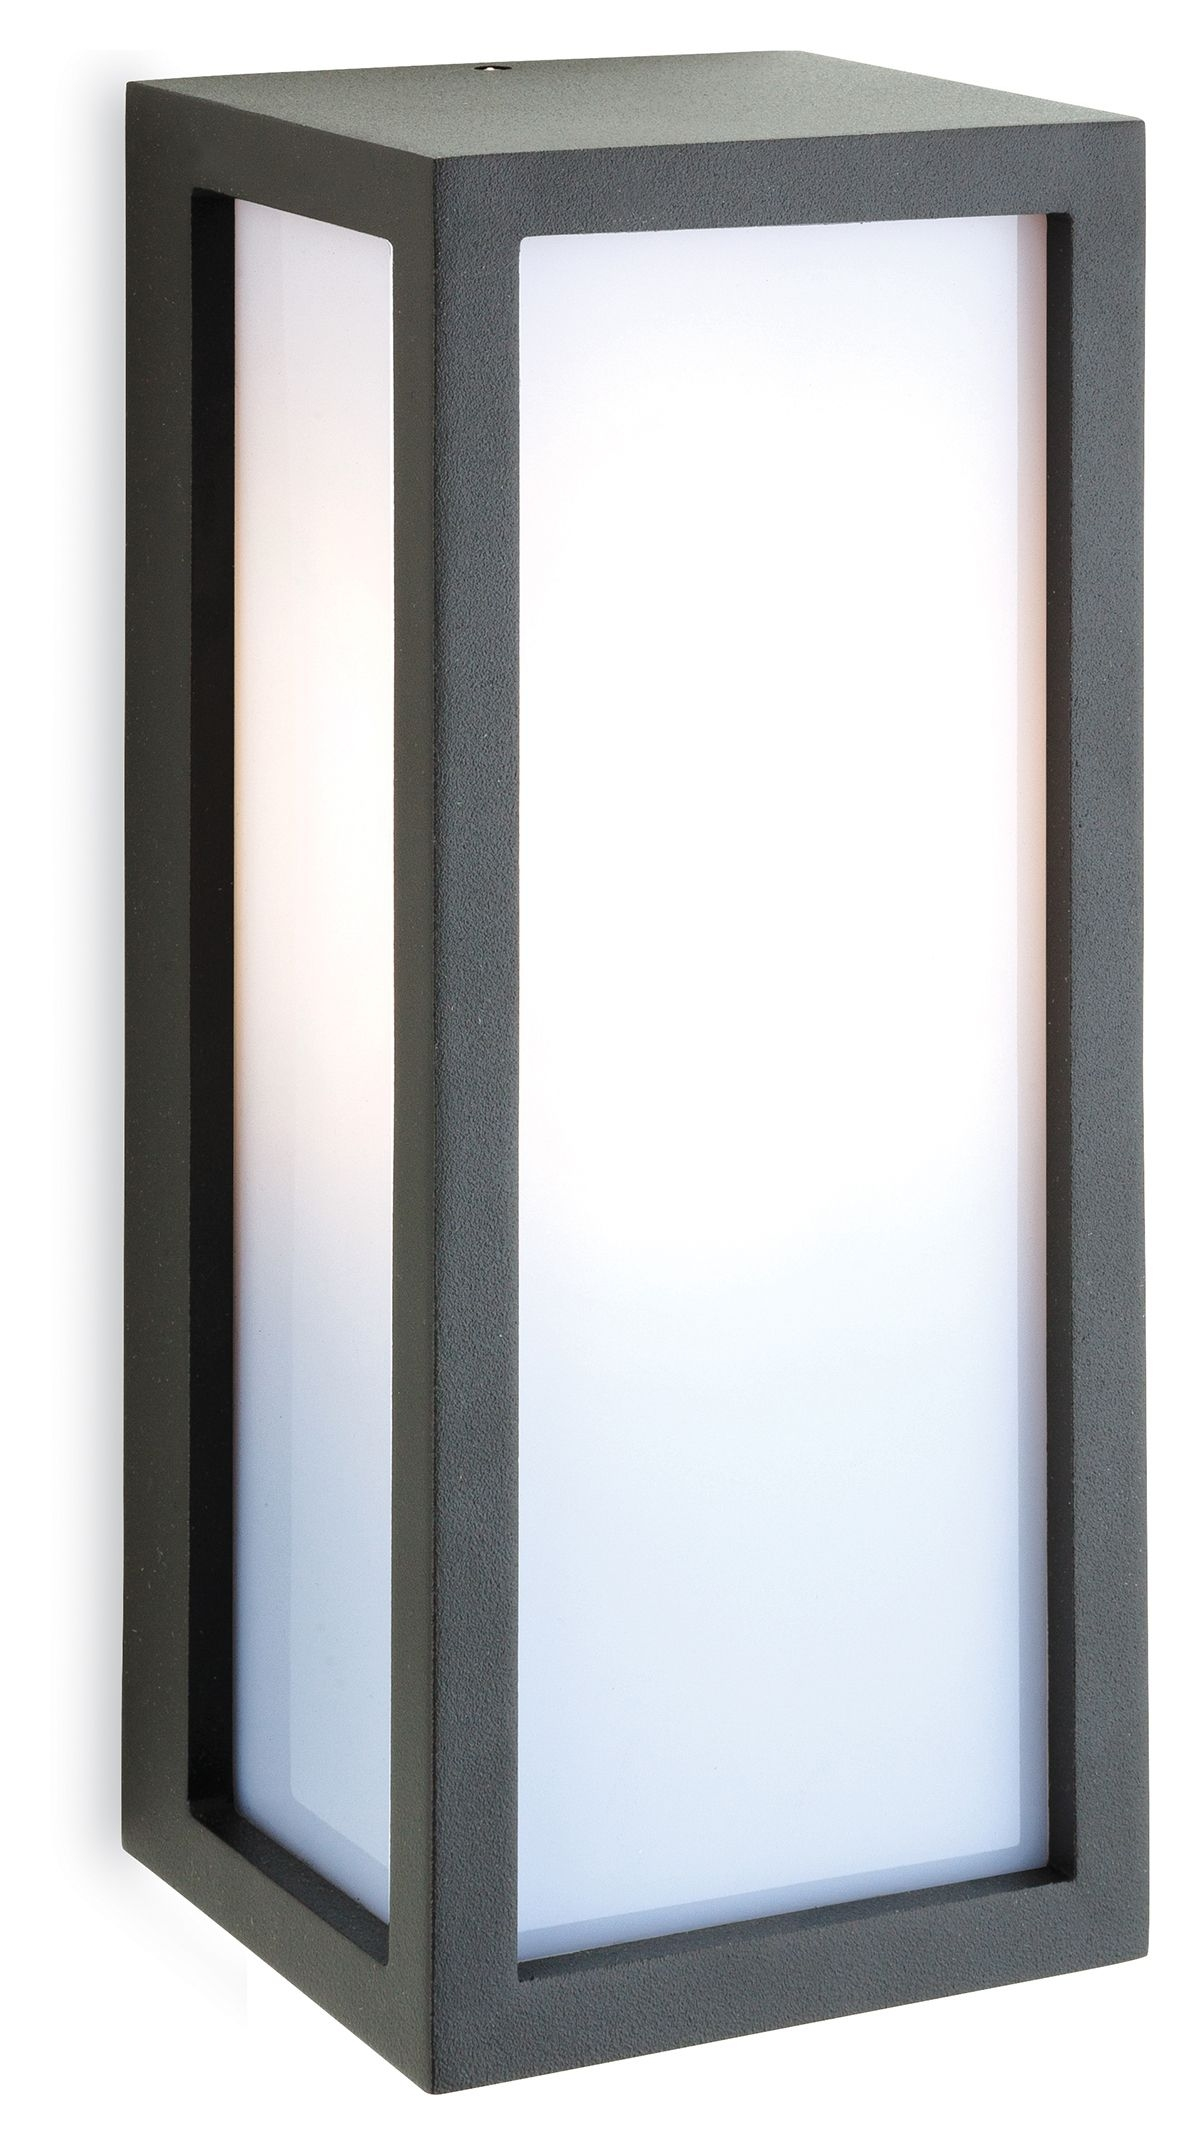 Wall Hanging Light Box : Exterior Box Wall Light with Opal Diffuser